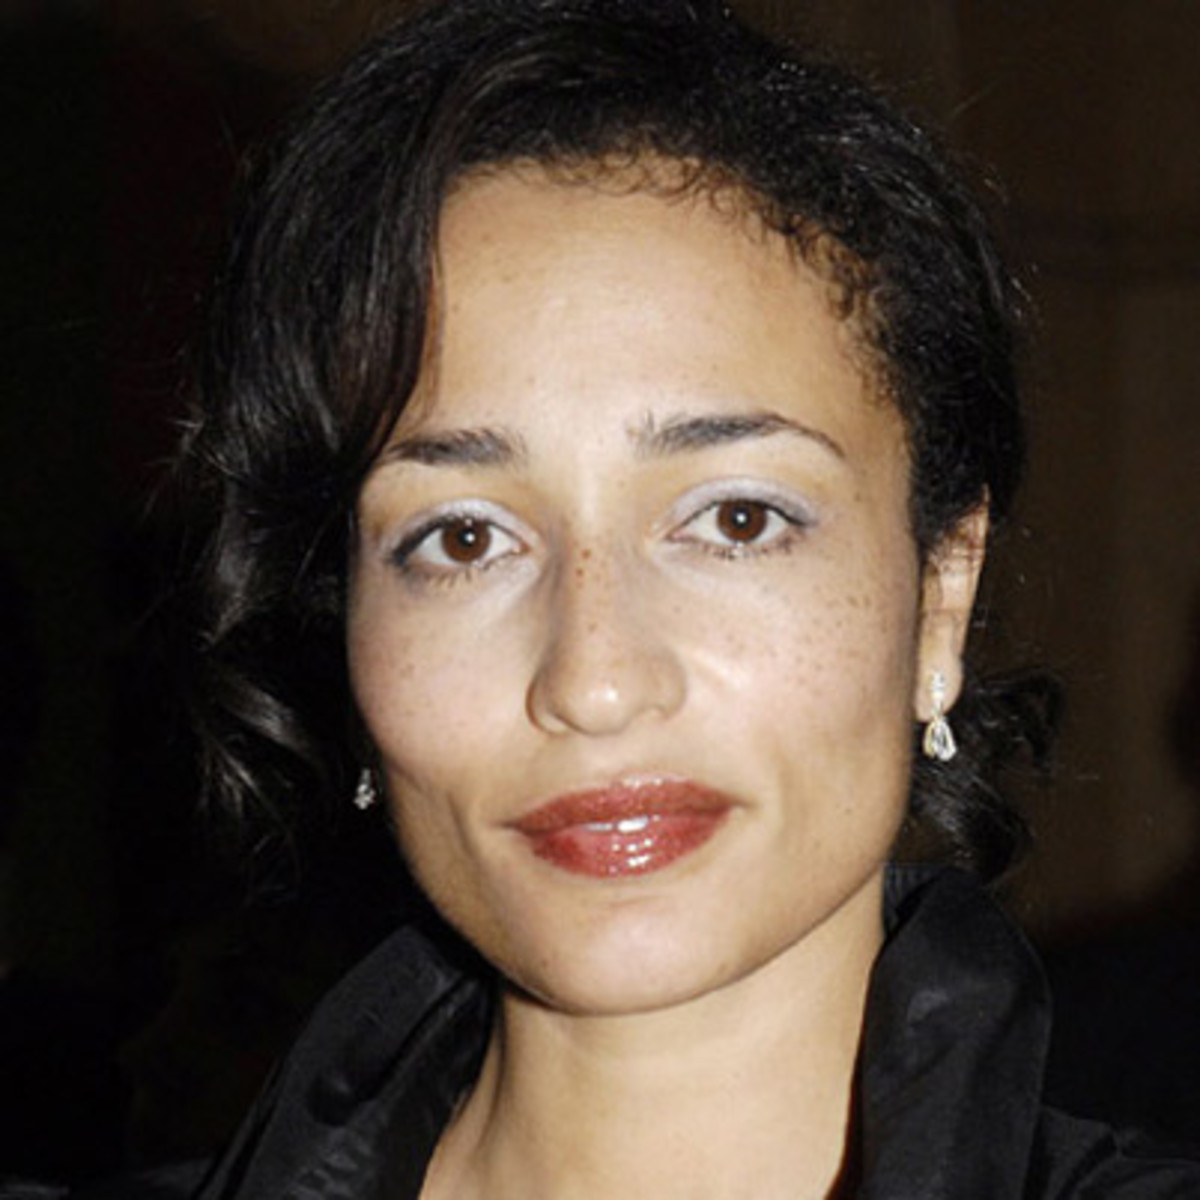 a biography of a novelist zadie smith Zadie smith biography: zadie smith was born in north-west london in 1975 she is the author of the novels white teeth,the autograph man,&.